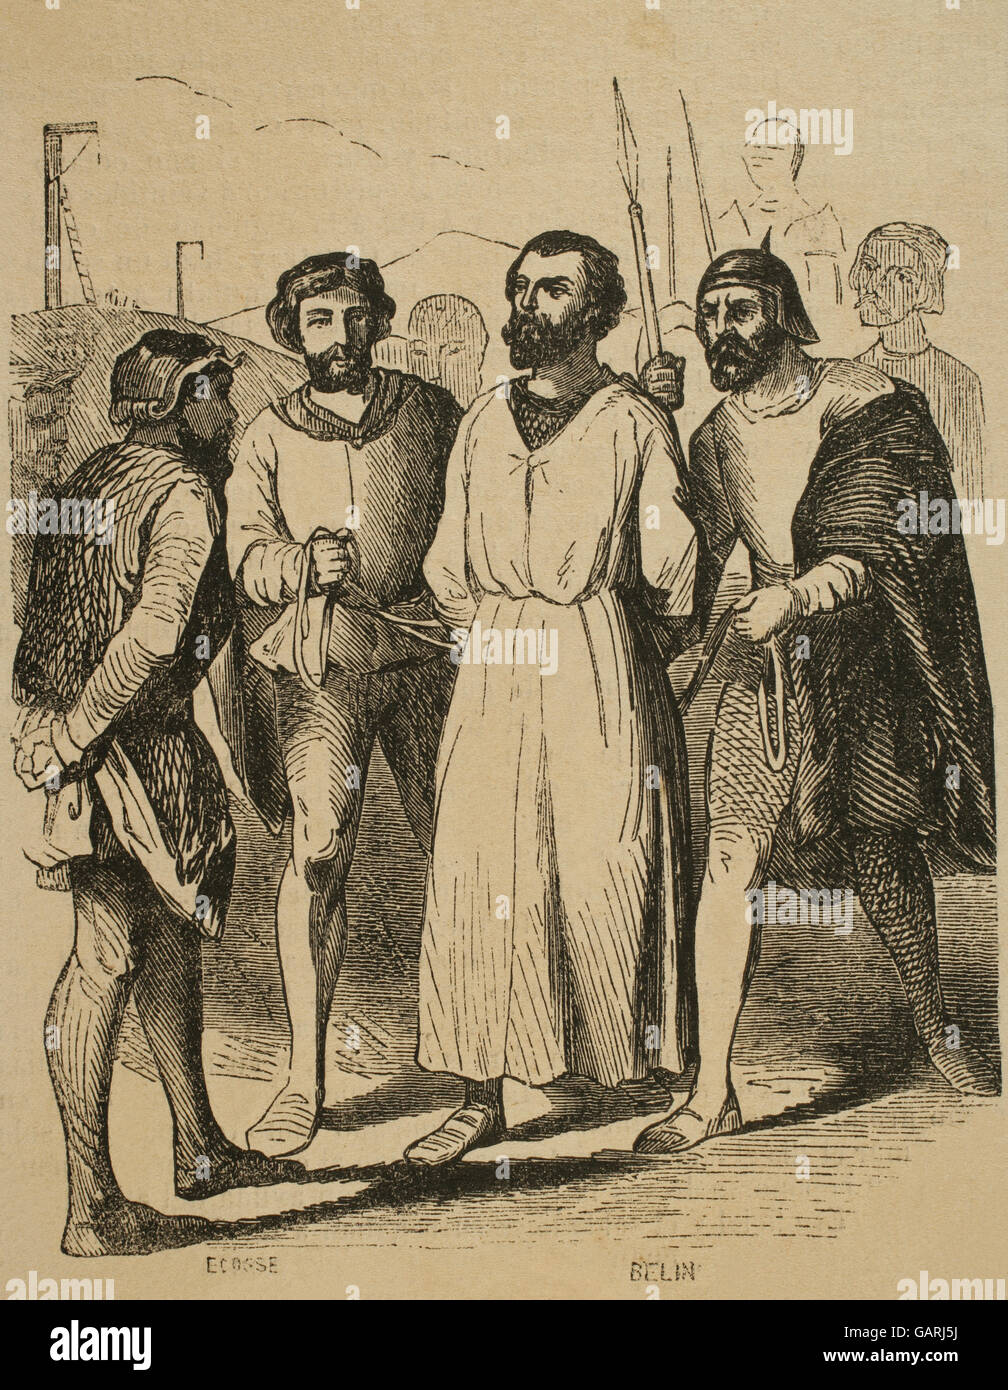 Enguerrand de Marigny (1260-1315). French chamberlain and minister.  Engraving depicting Marigny driven to his execution in the Gibbet of  Montfaucon, ...